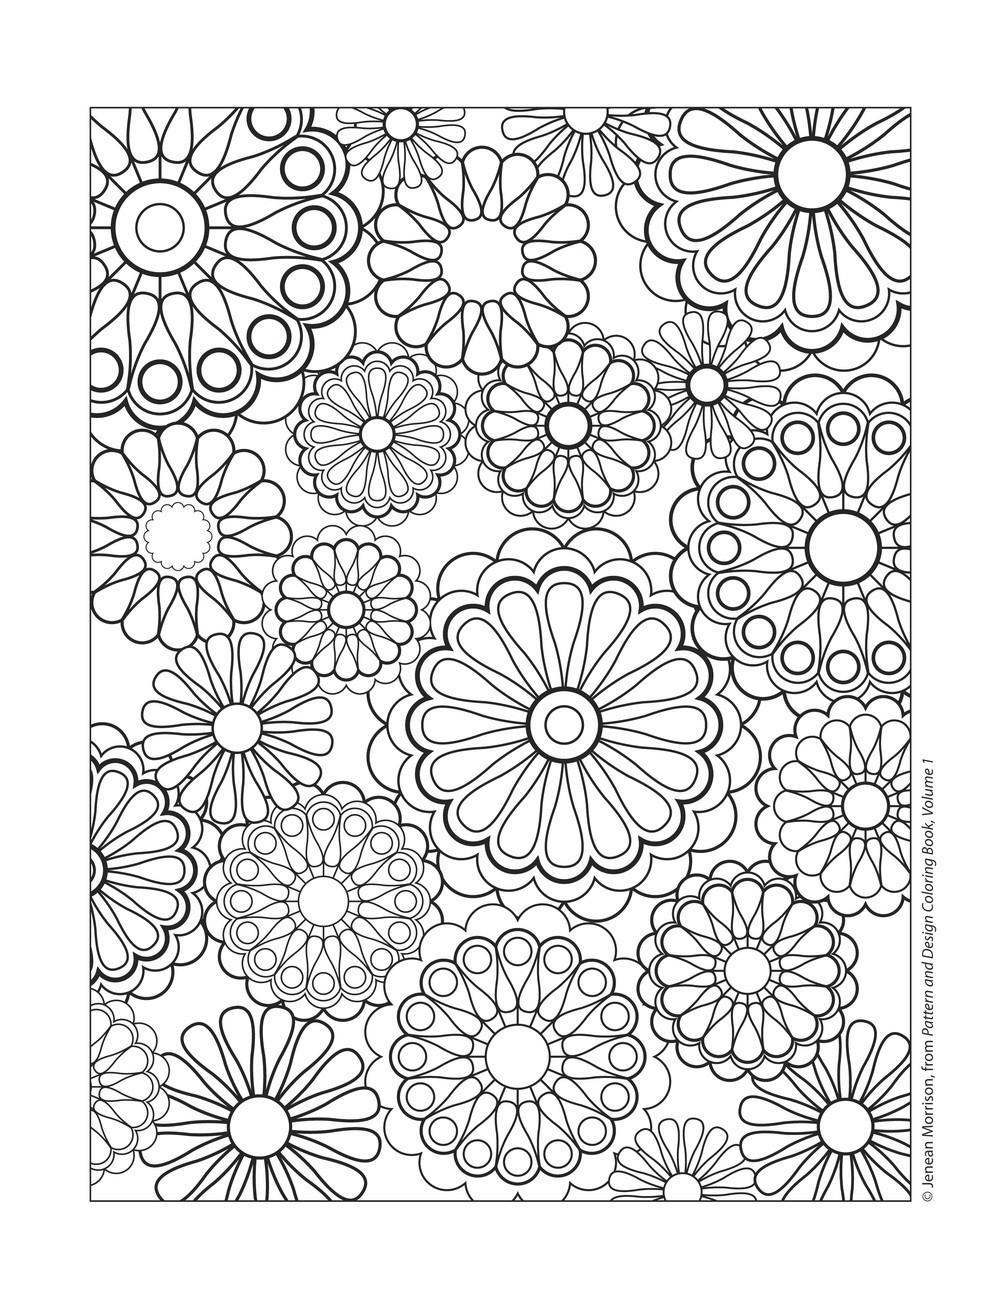 Free Kaleidoscope Coloring Pages Copy Line Drawing printable